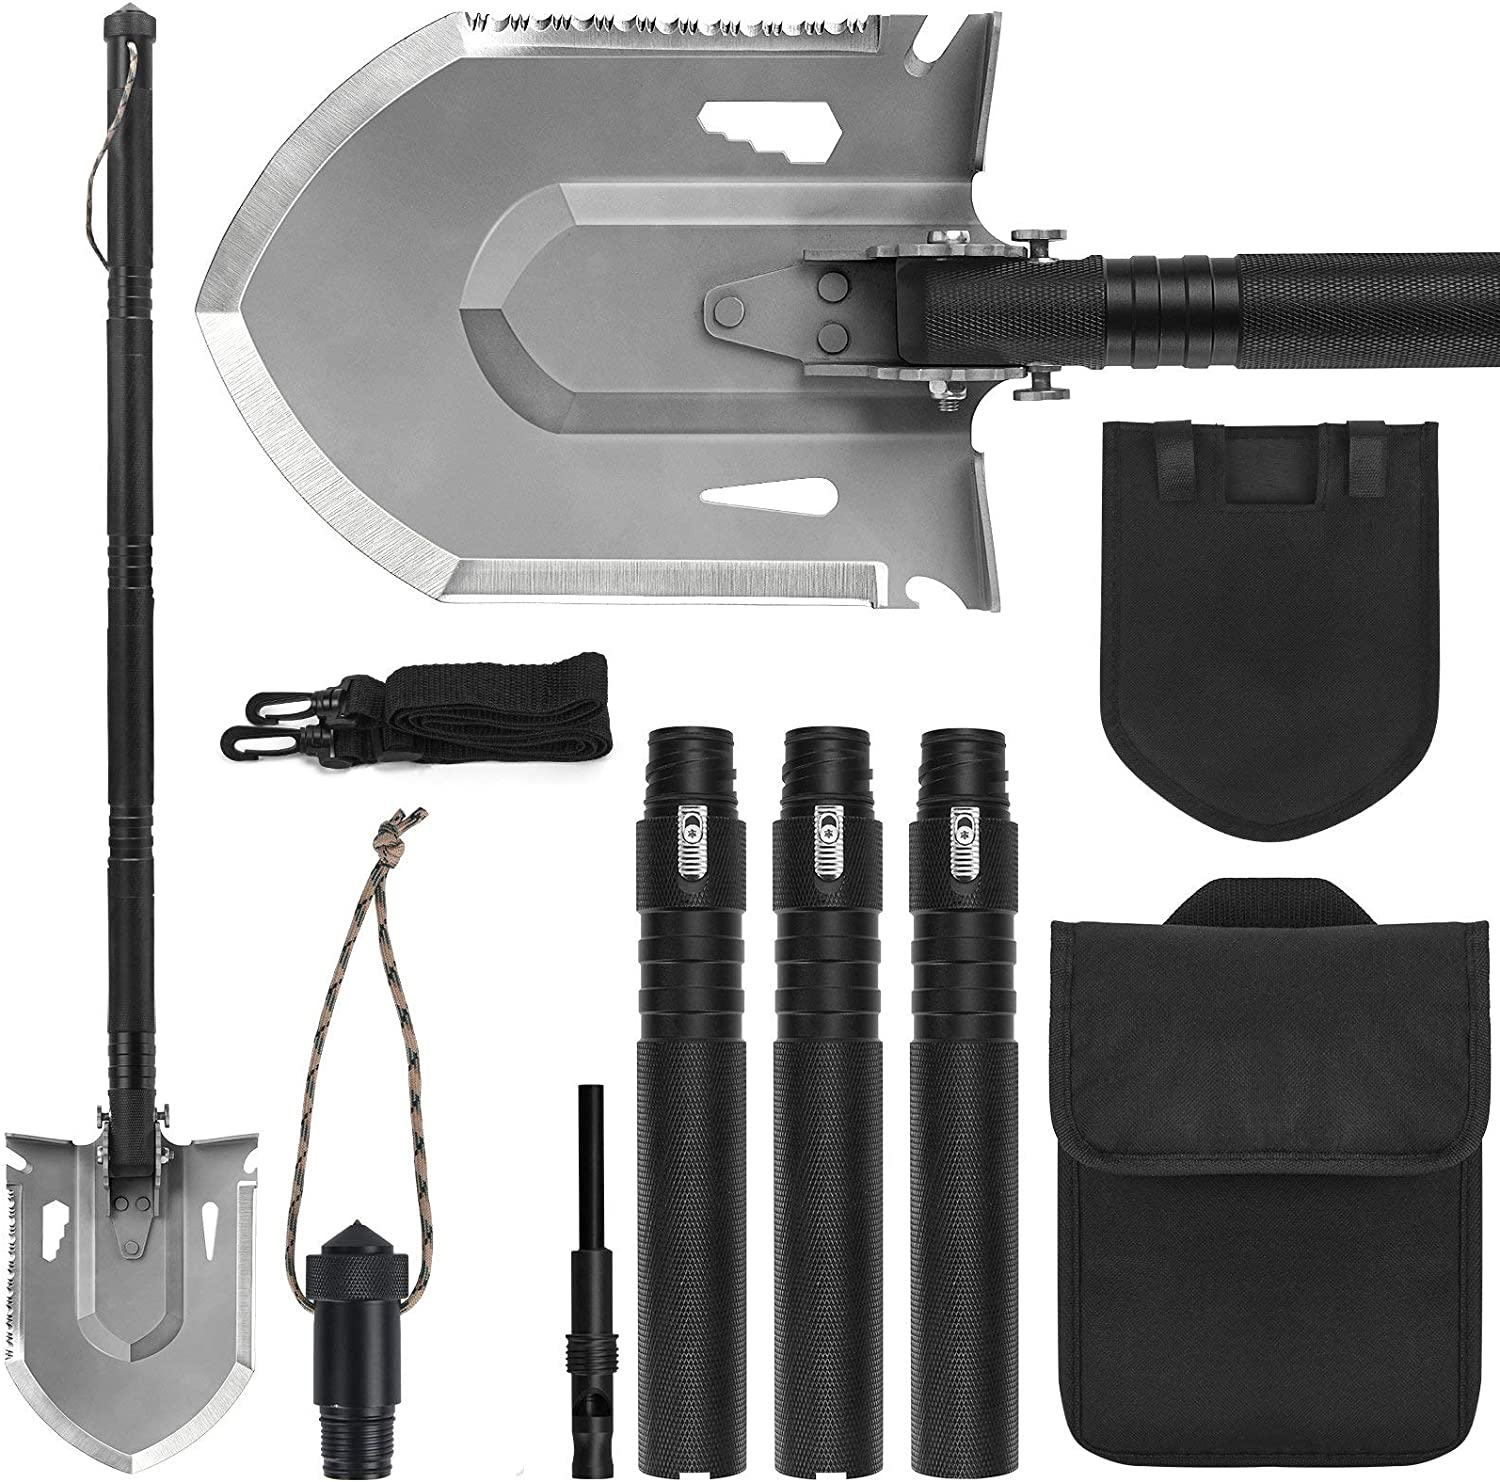 Survival Shovel sale Multitool FLYEGO Camping Storage Low price with Po